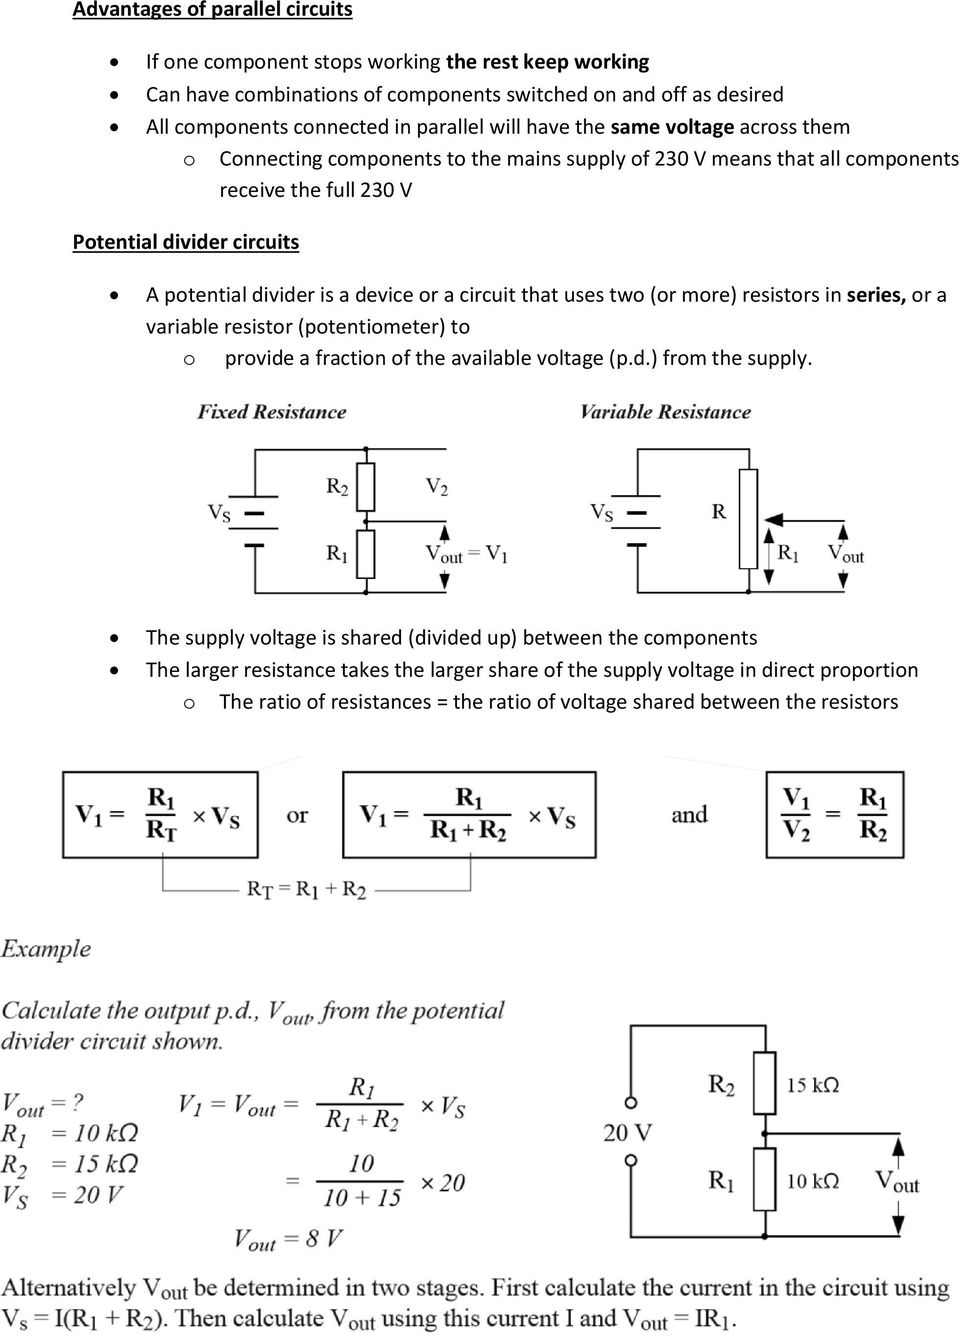 Series And Parallel Circuits Pdf Kirchhoff39s Voltage Law Kvl Divider Laws Circuit That Uses Two Or More Resistors In A Variable Resistor